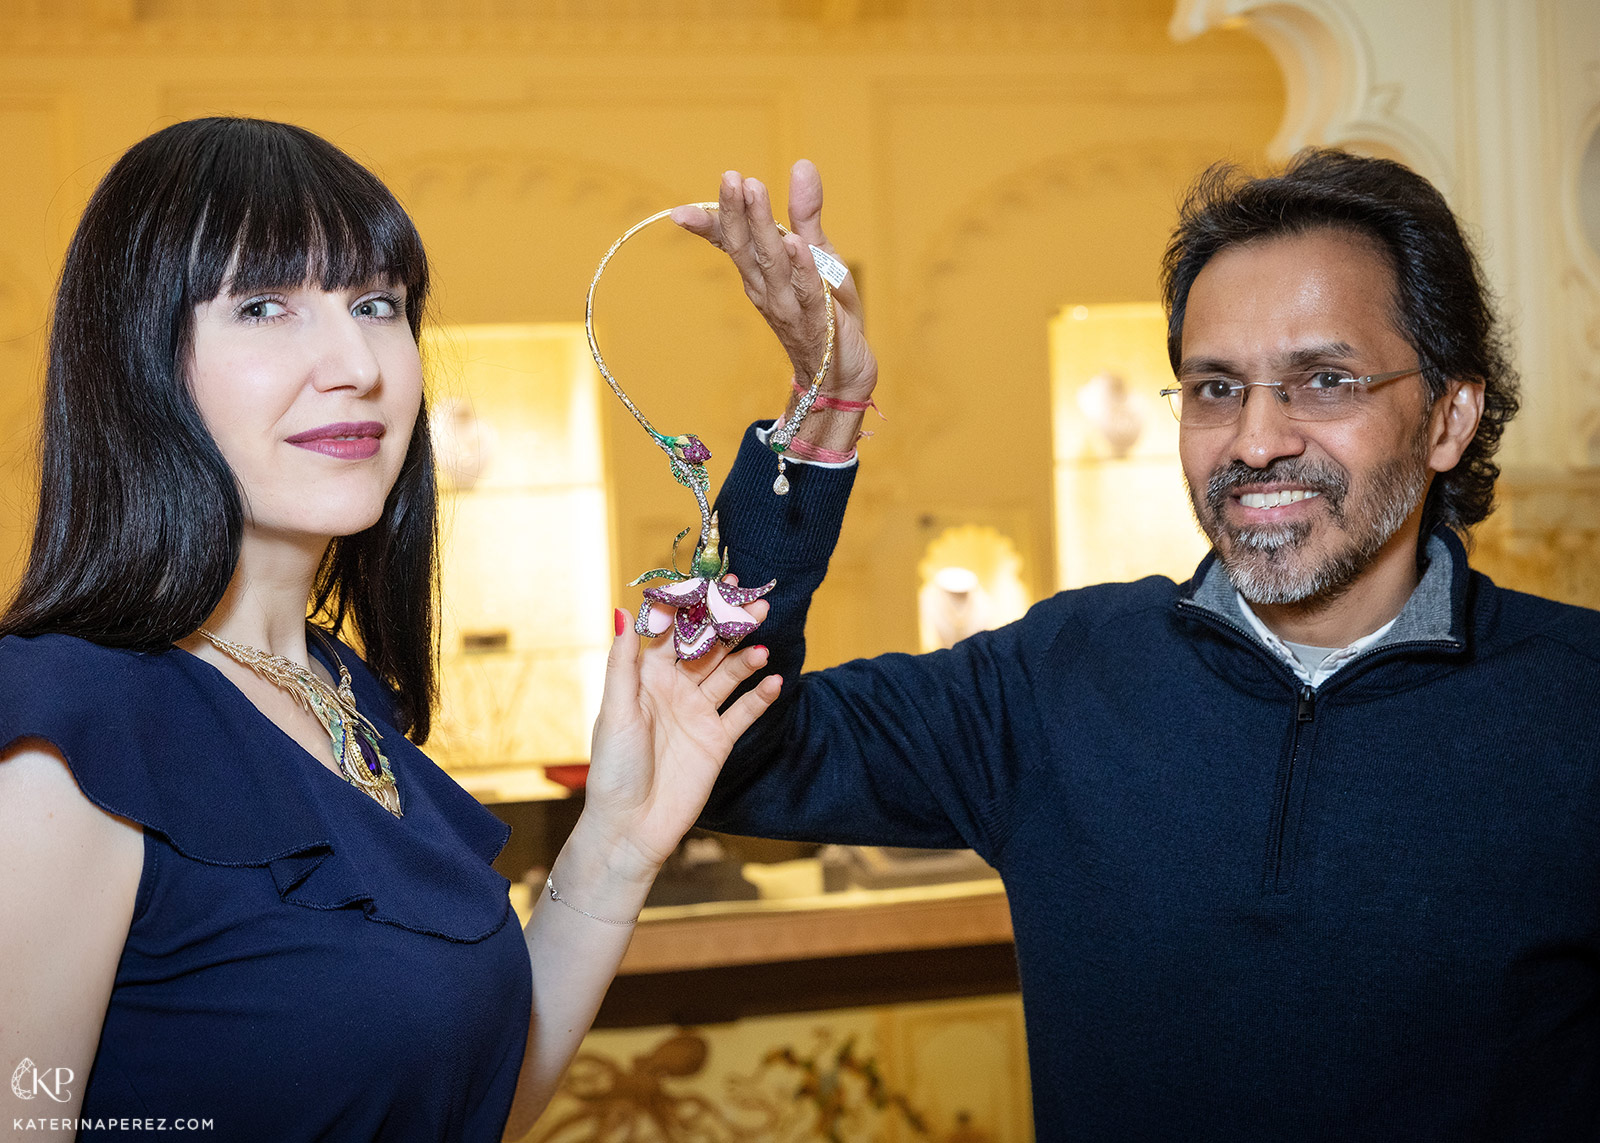 Katerina Perez and Anup Bohra of Masterstrokes with the 'Aphrodite' necklace featuring 158.55ct of pink conch shell, central 4.41ct ruby and accenting rubies, emeralds, tsavorites and diamonds in champlevé enamel